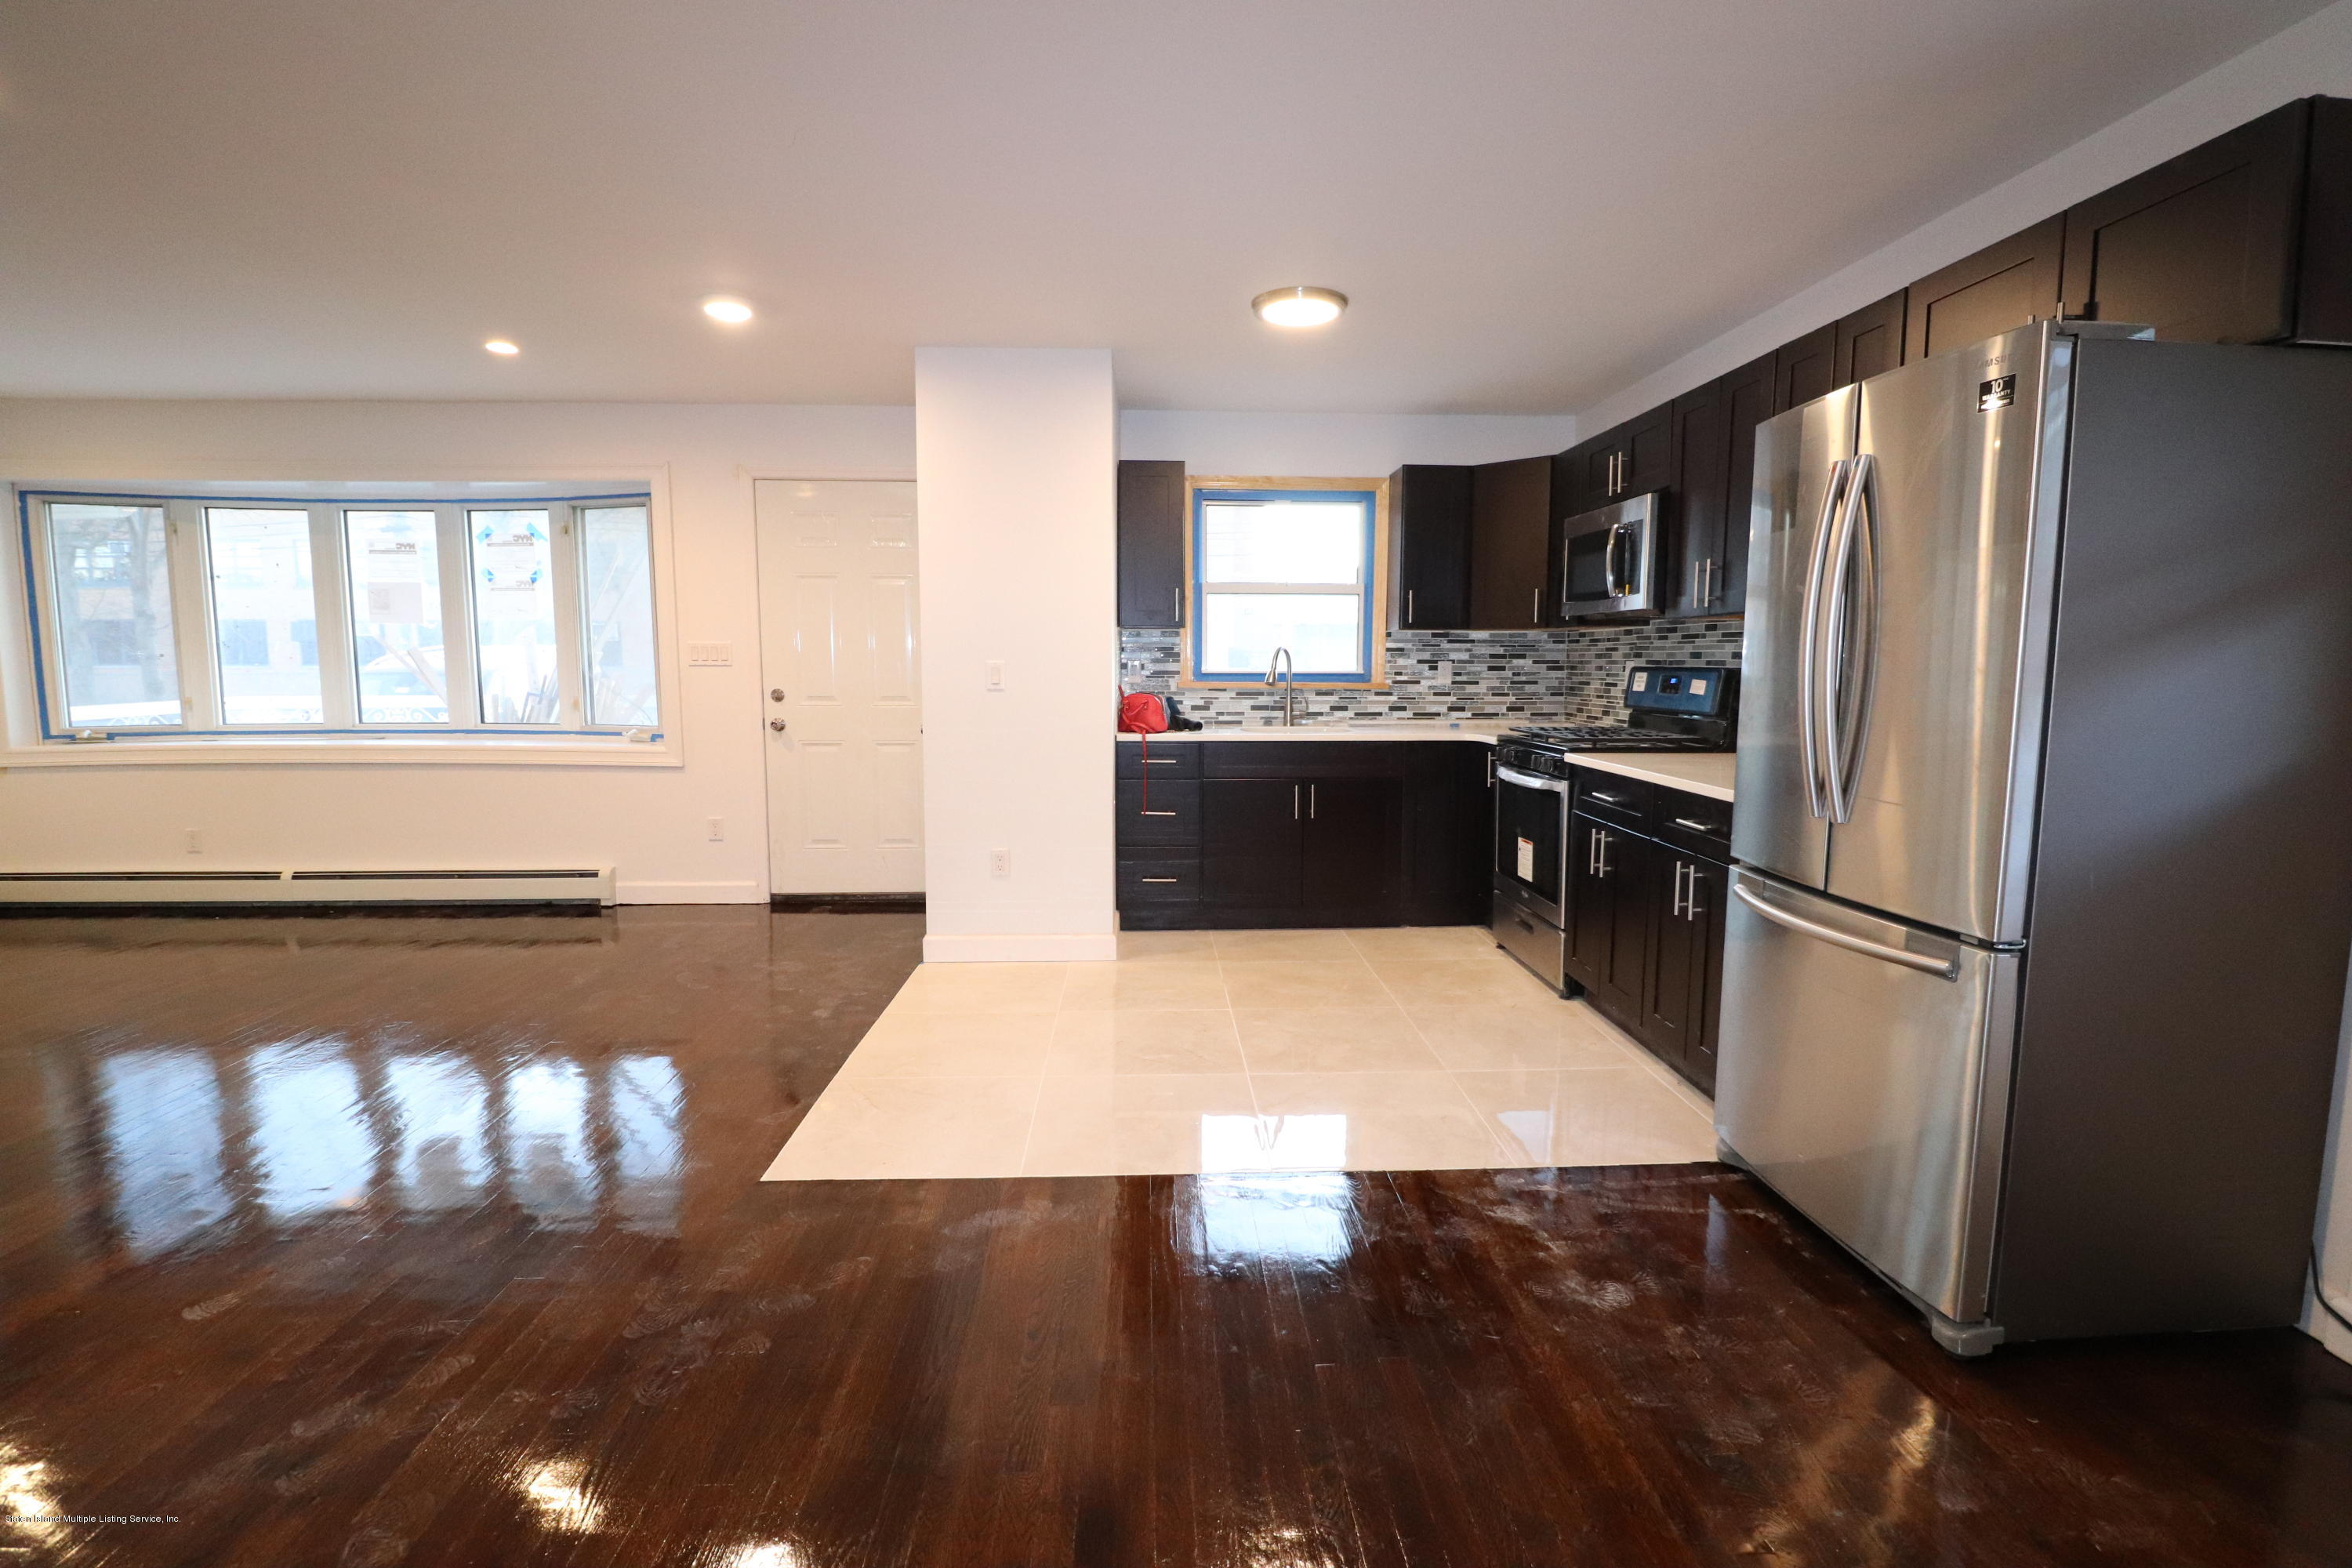 441 Buel Avenue,Staten Island,New York,10305,United States,3 Bedrooms Bedrooms,6 Rooms Rooms,2 BathroomsBathrooms,Res-Rental,Buel,1135154